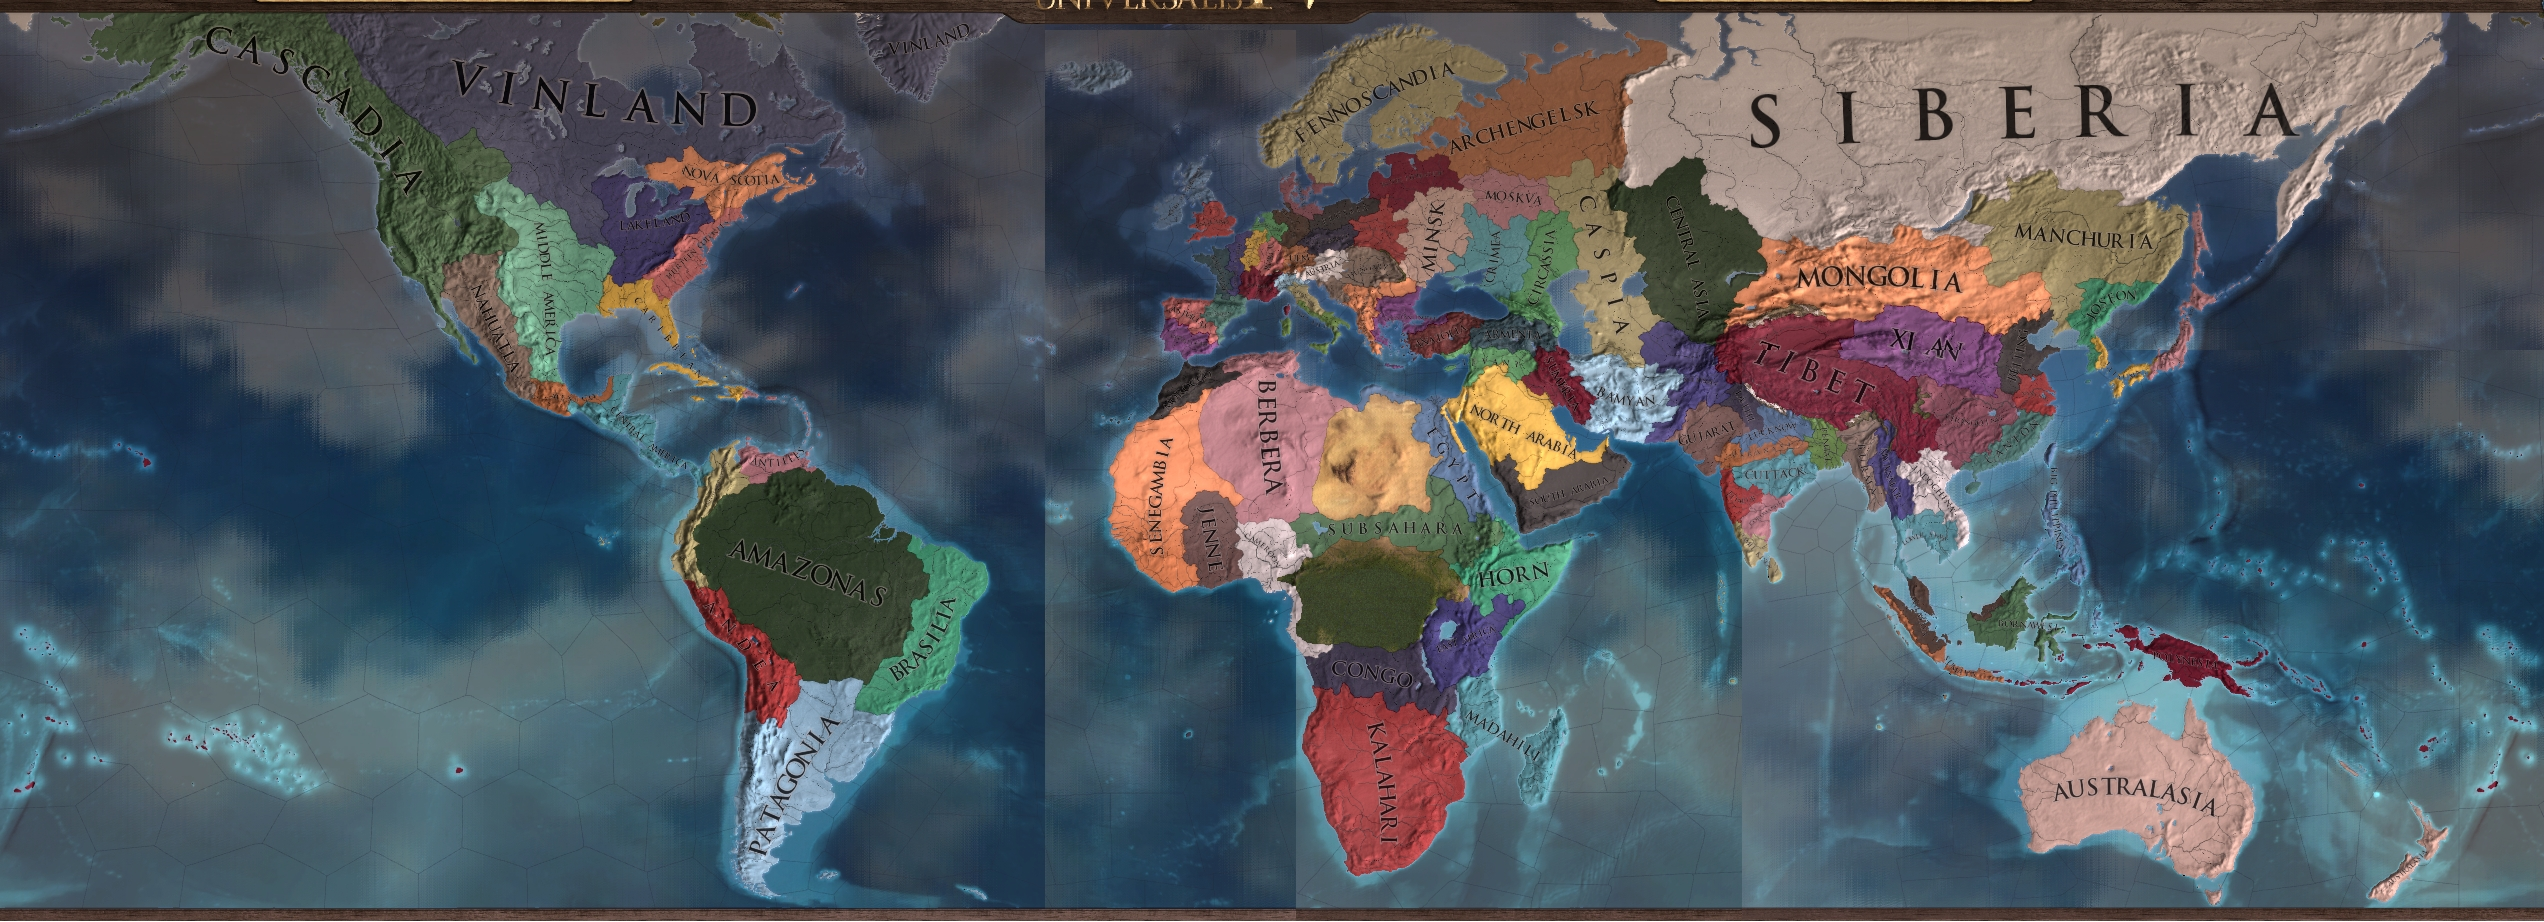 The World In 1444 Divided Into 100 Nations Of (Almost) Equal inside End Of The World Amyan